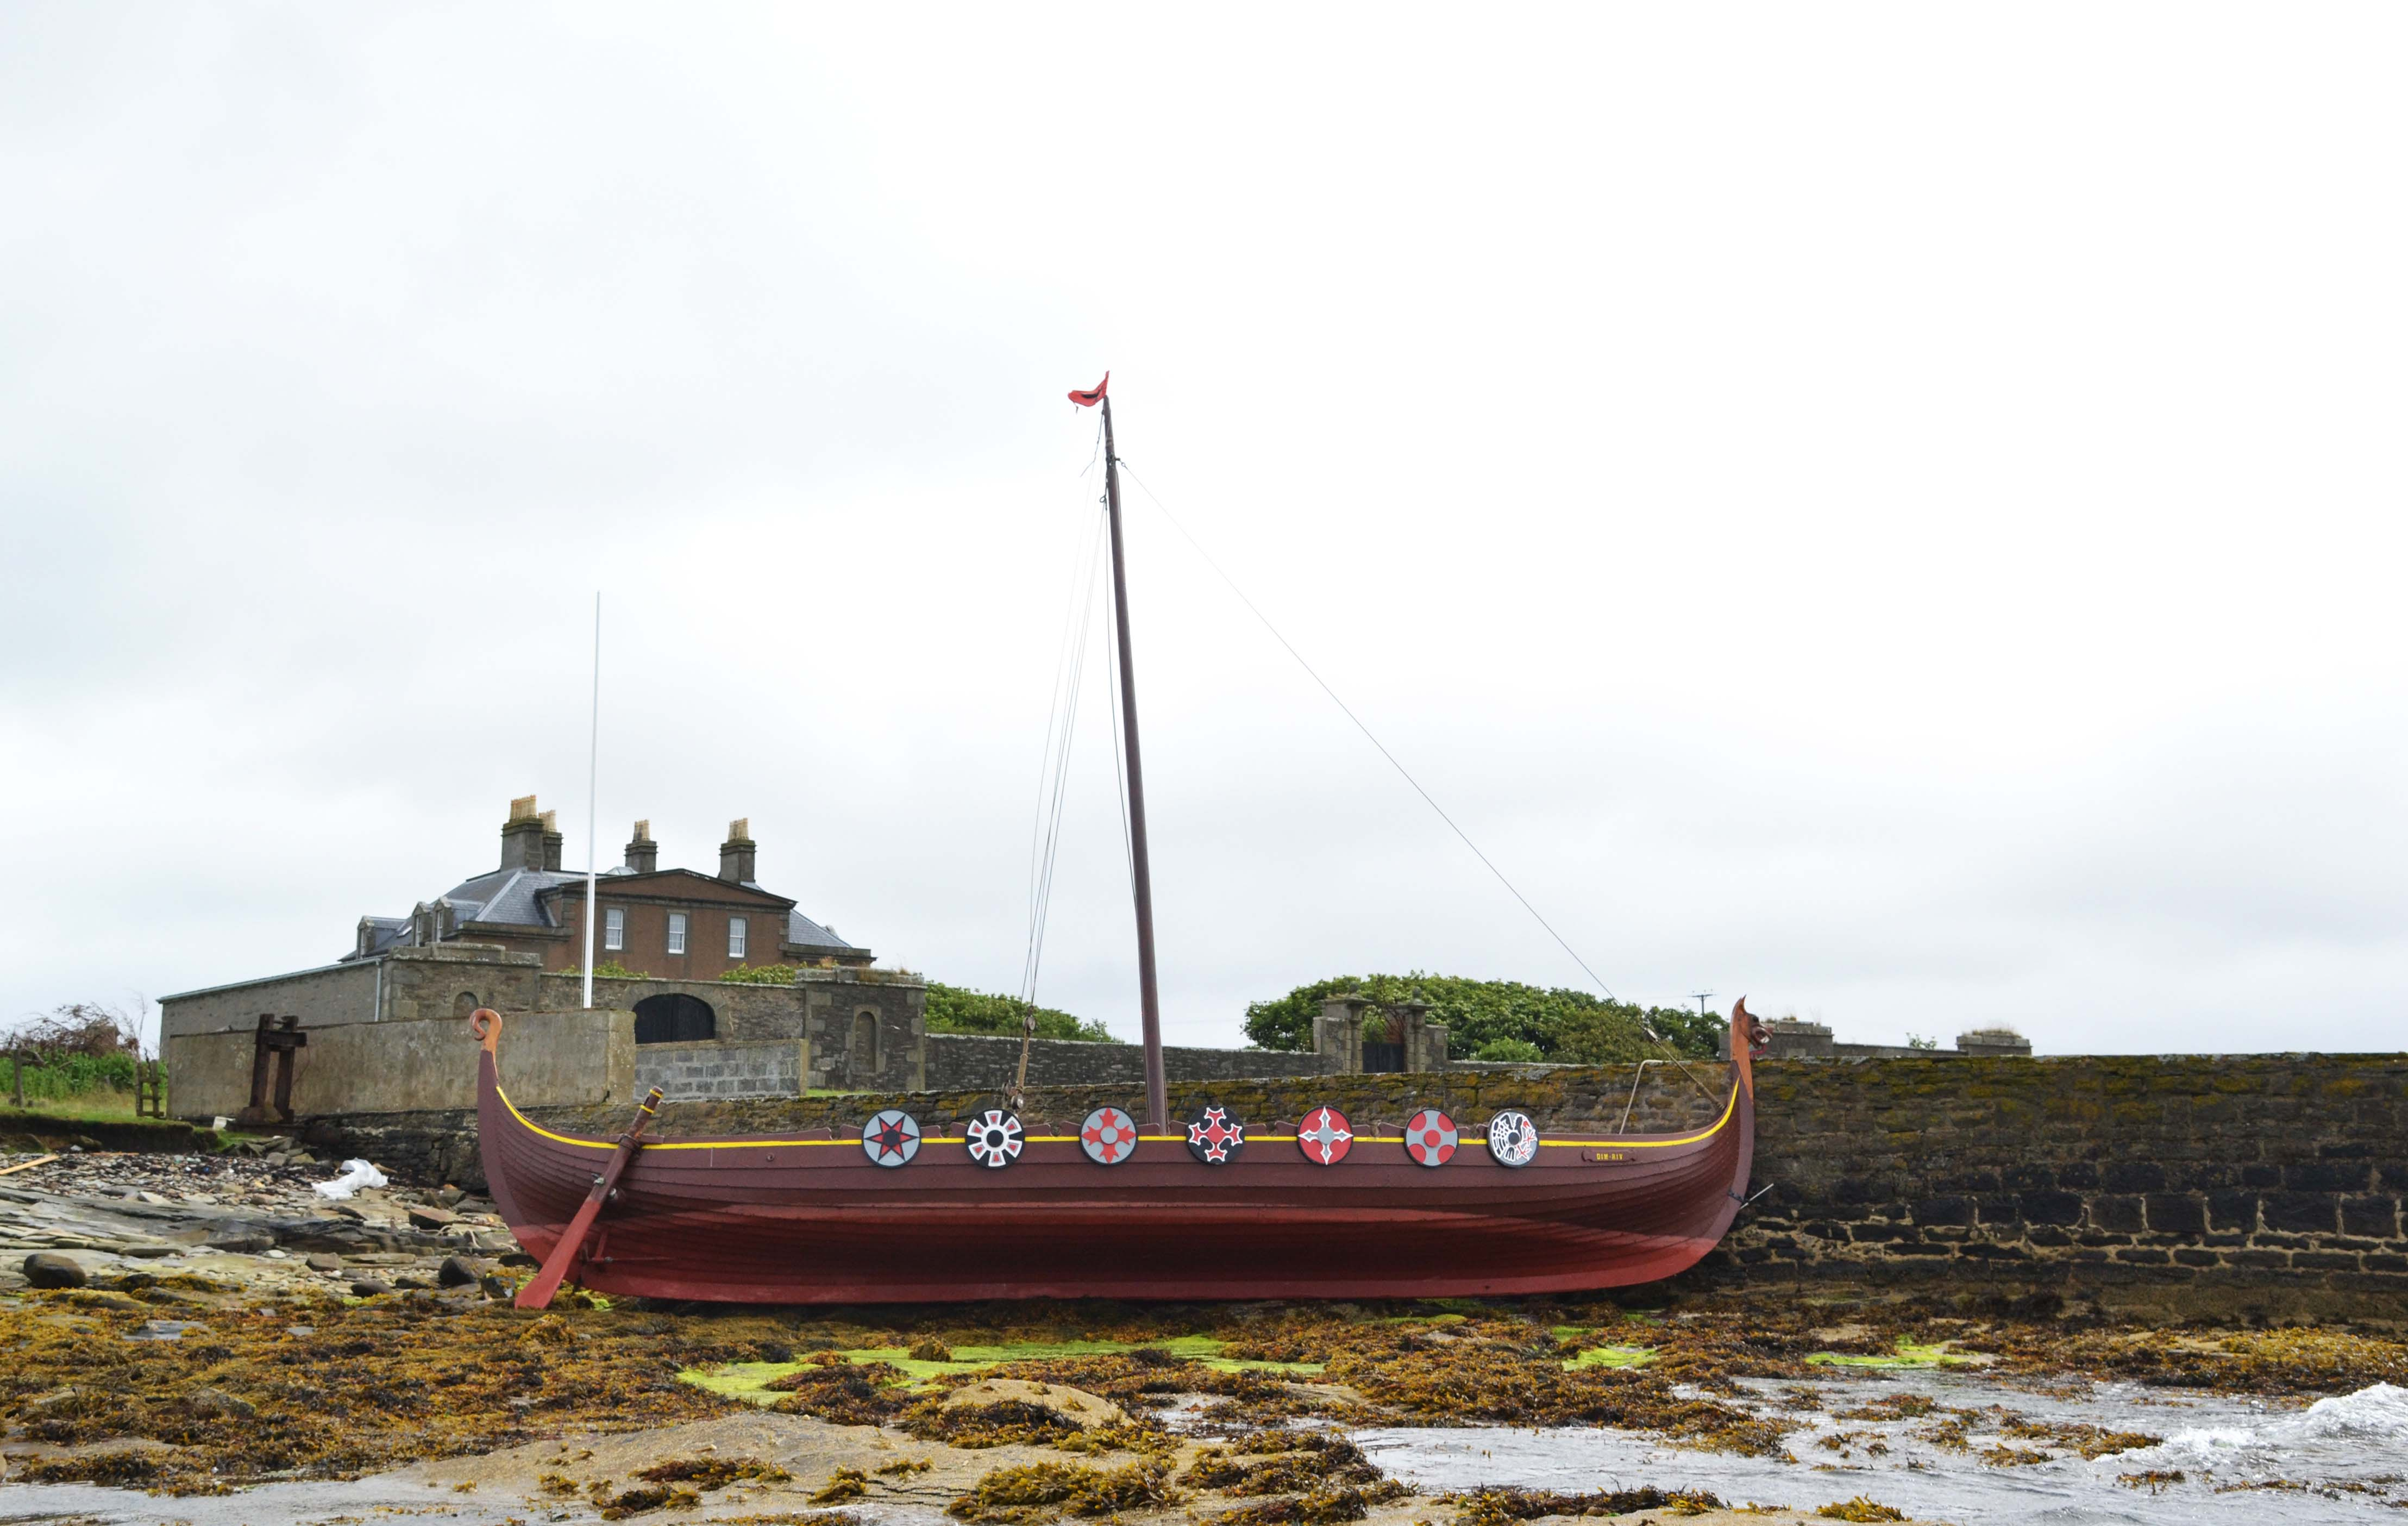 The Dim Riv broke free and drifted across to Bressay overnight. Photo: Charlie Umphray